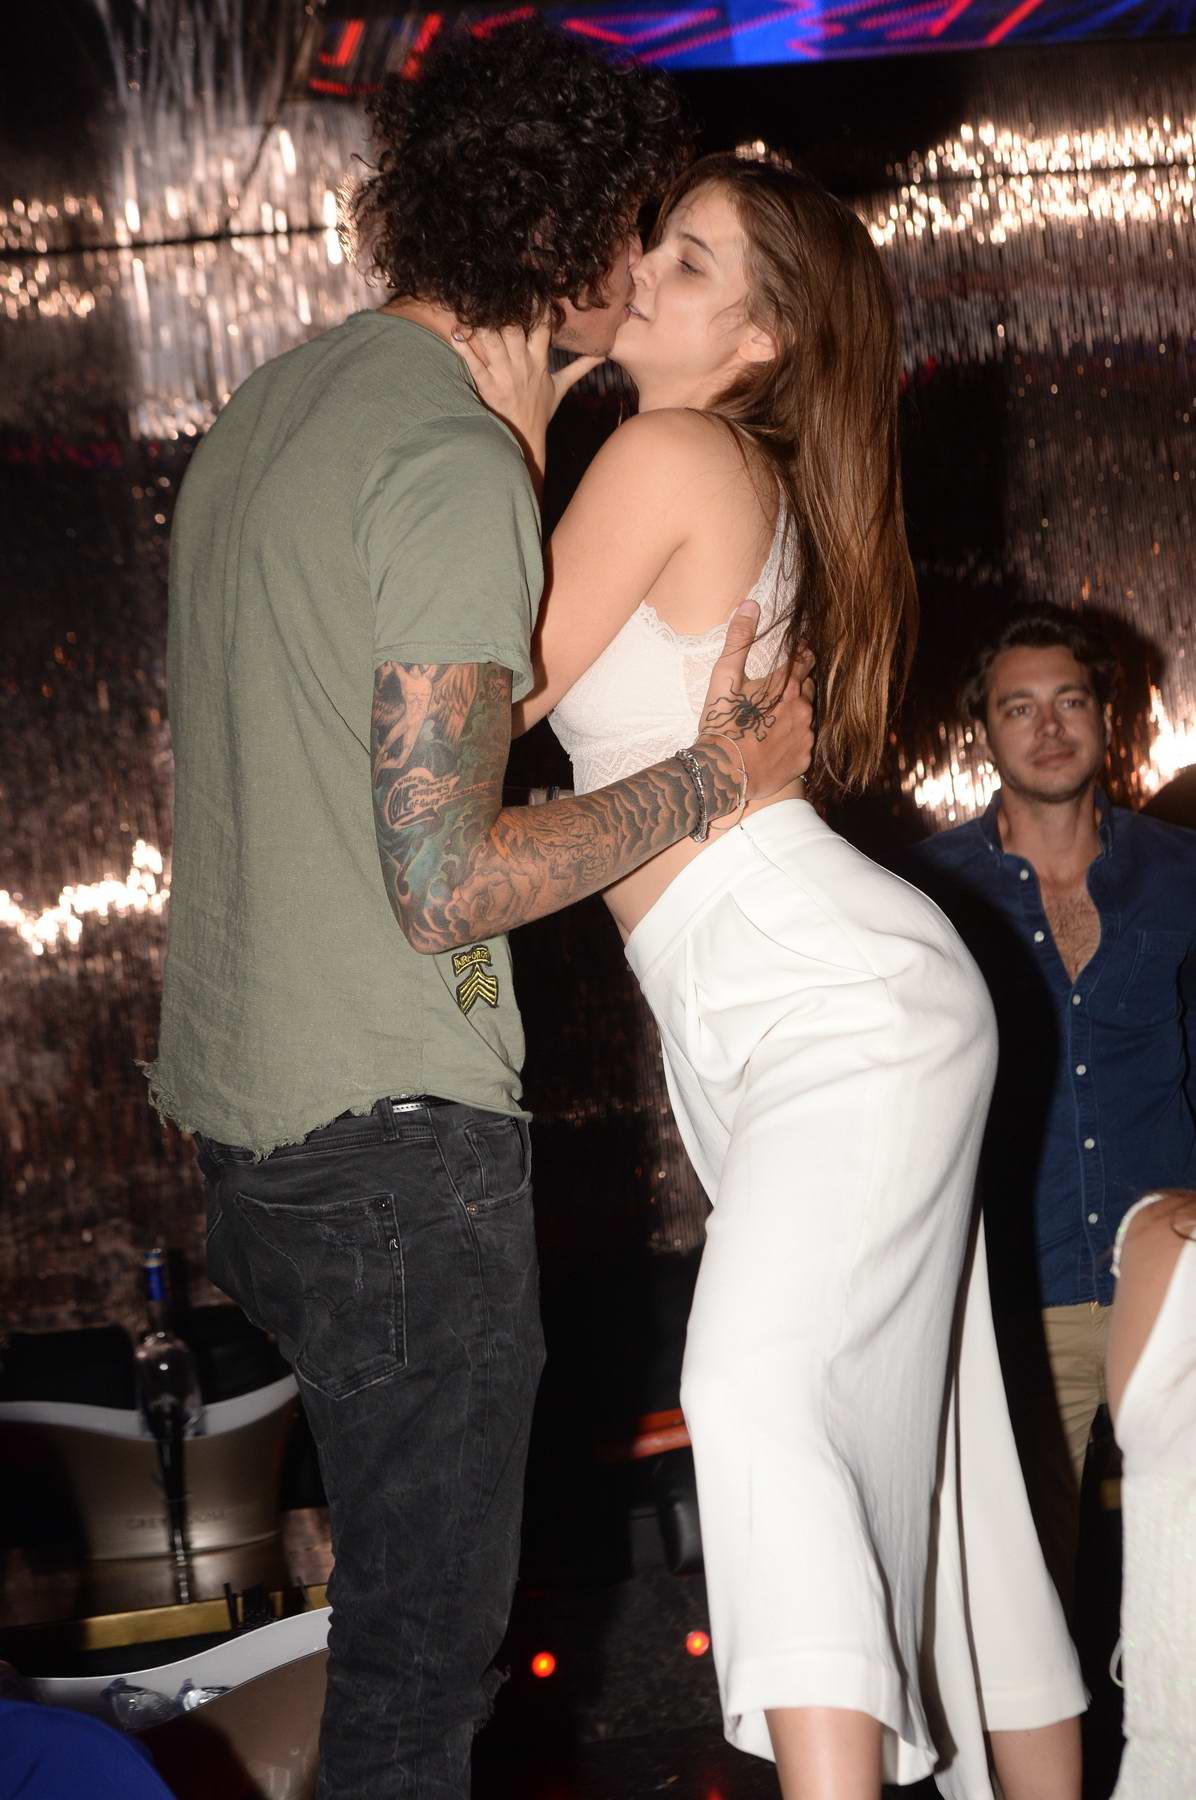 Barbara Palvin spotted partying with Julian Perretta in Saint Tropez, France